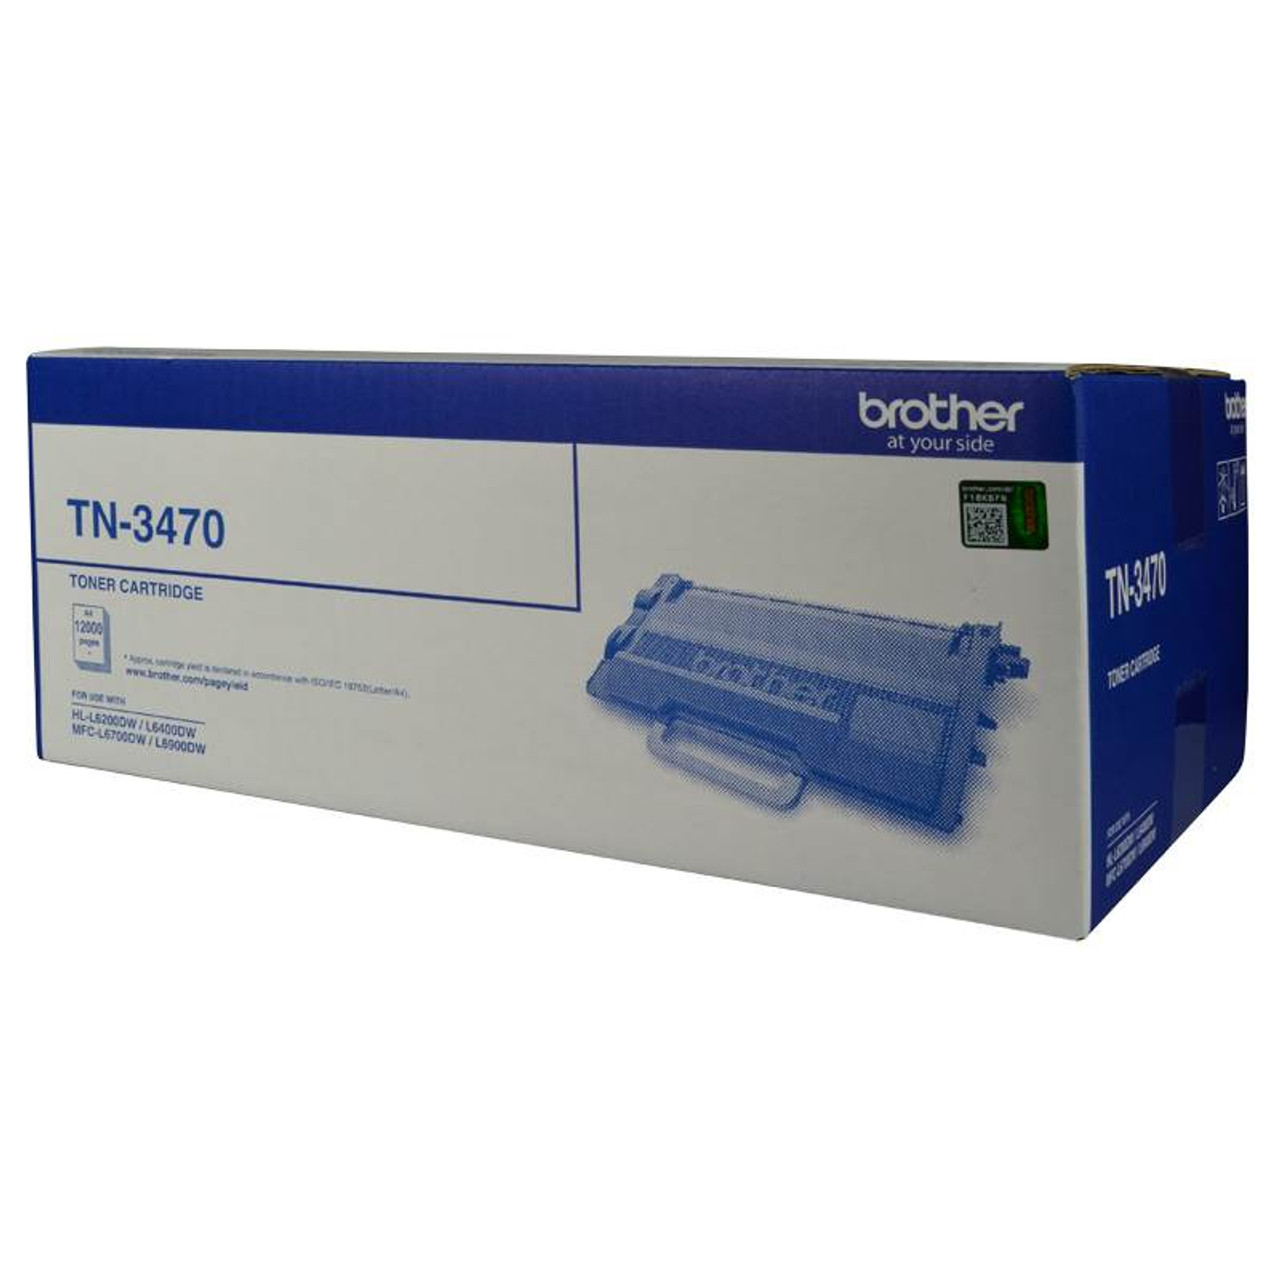 Image for Brother TN-3470 Super High Yield Toner Cartridge CX Computer Superstore